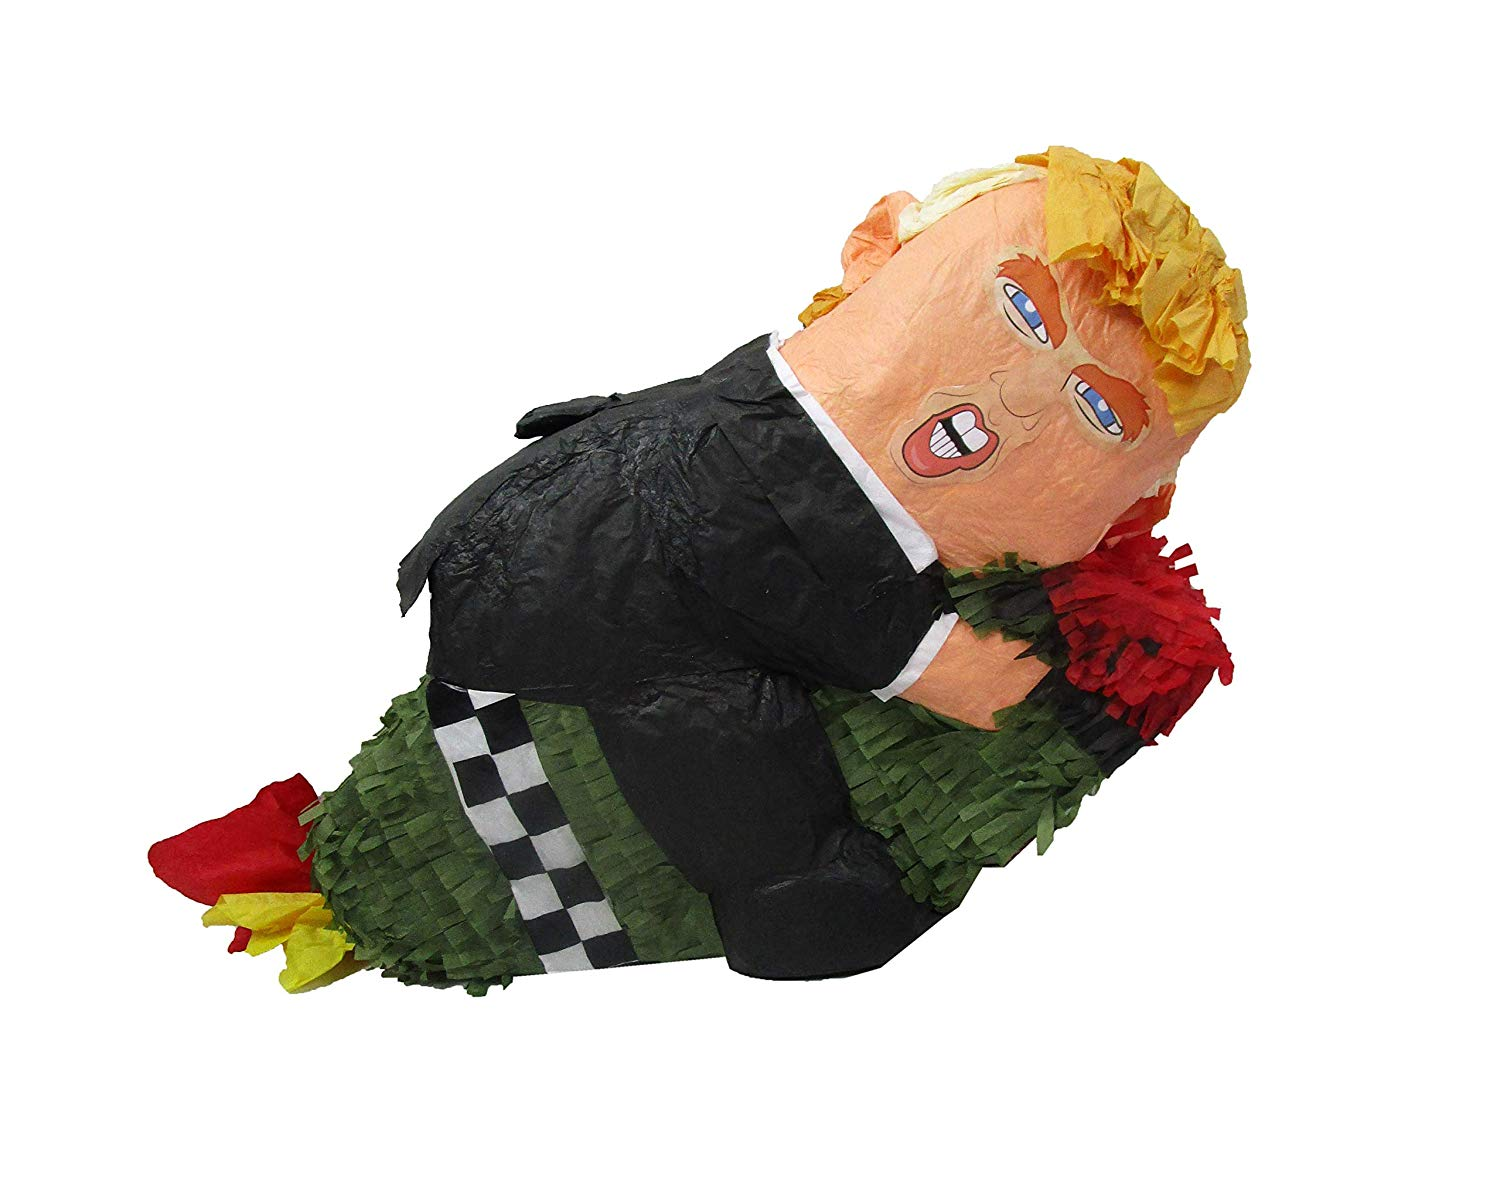 Trump on Missile Party Pinata